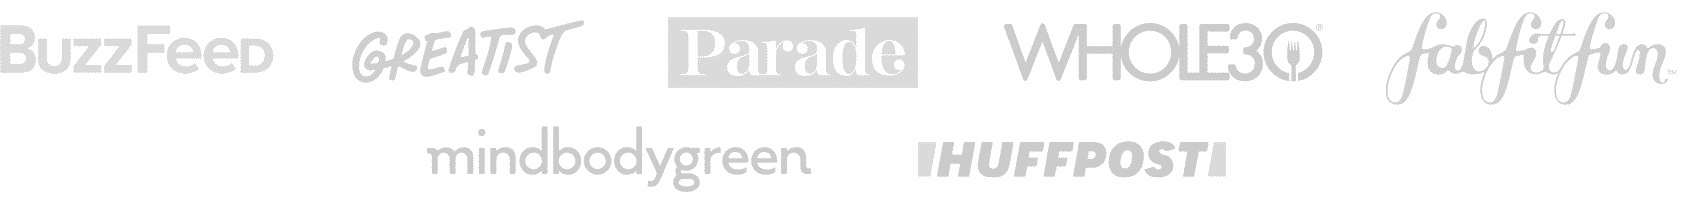 Logos: Buzzfeed, Greatist, Parade, Whole30, FitFabFun, MindBodyGreen, HuffPost